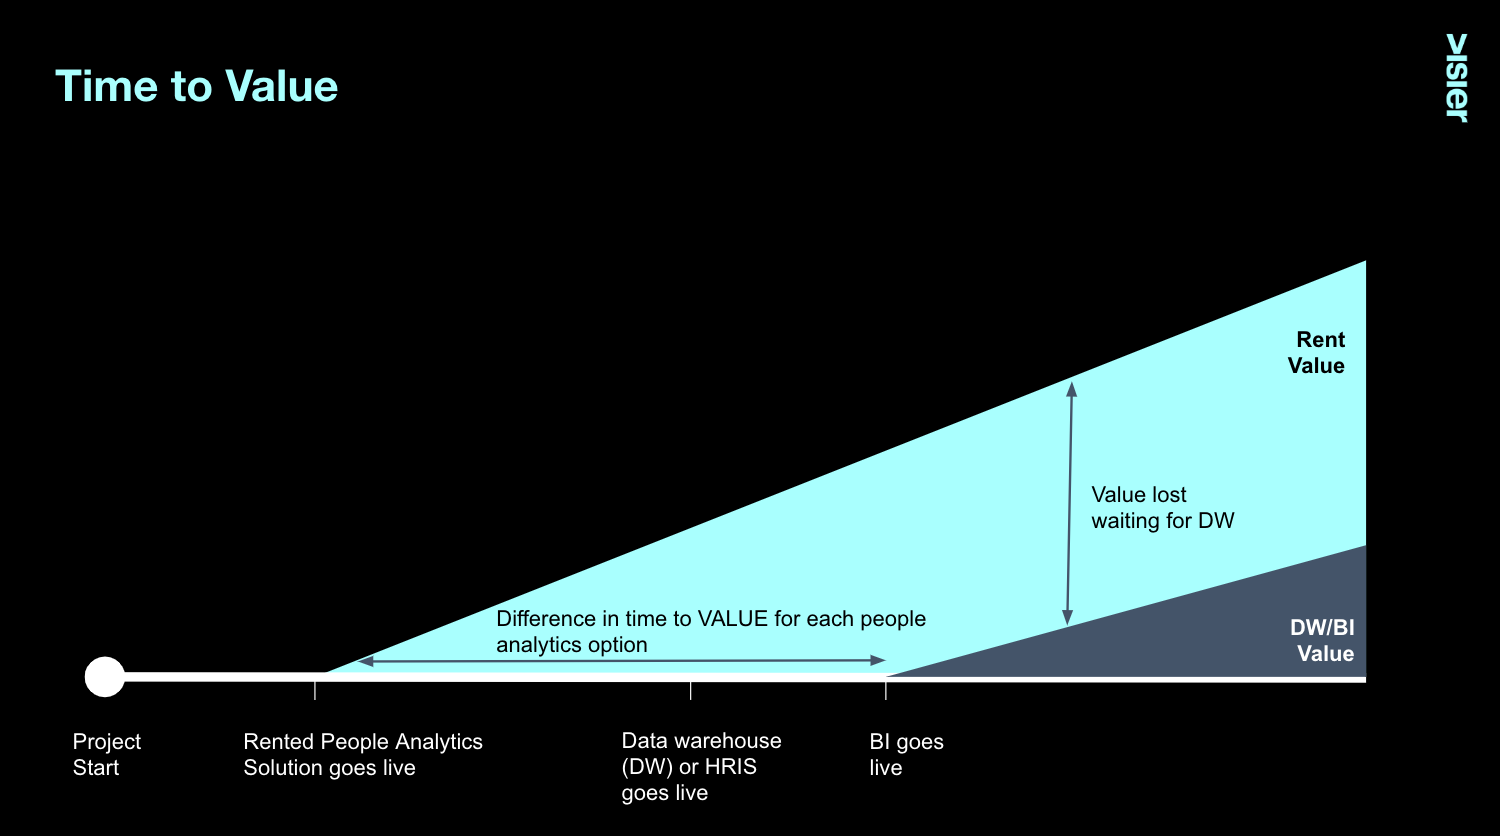 Time to Value for people analytics solutions like a rented people analytics solution, data warehouse, BI or HRIS